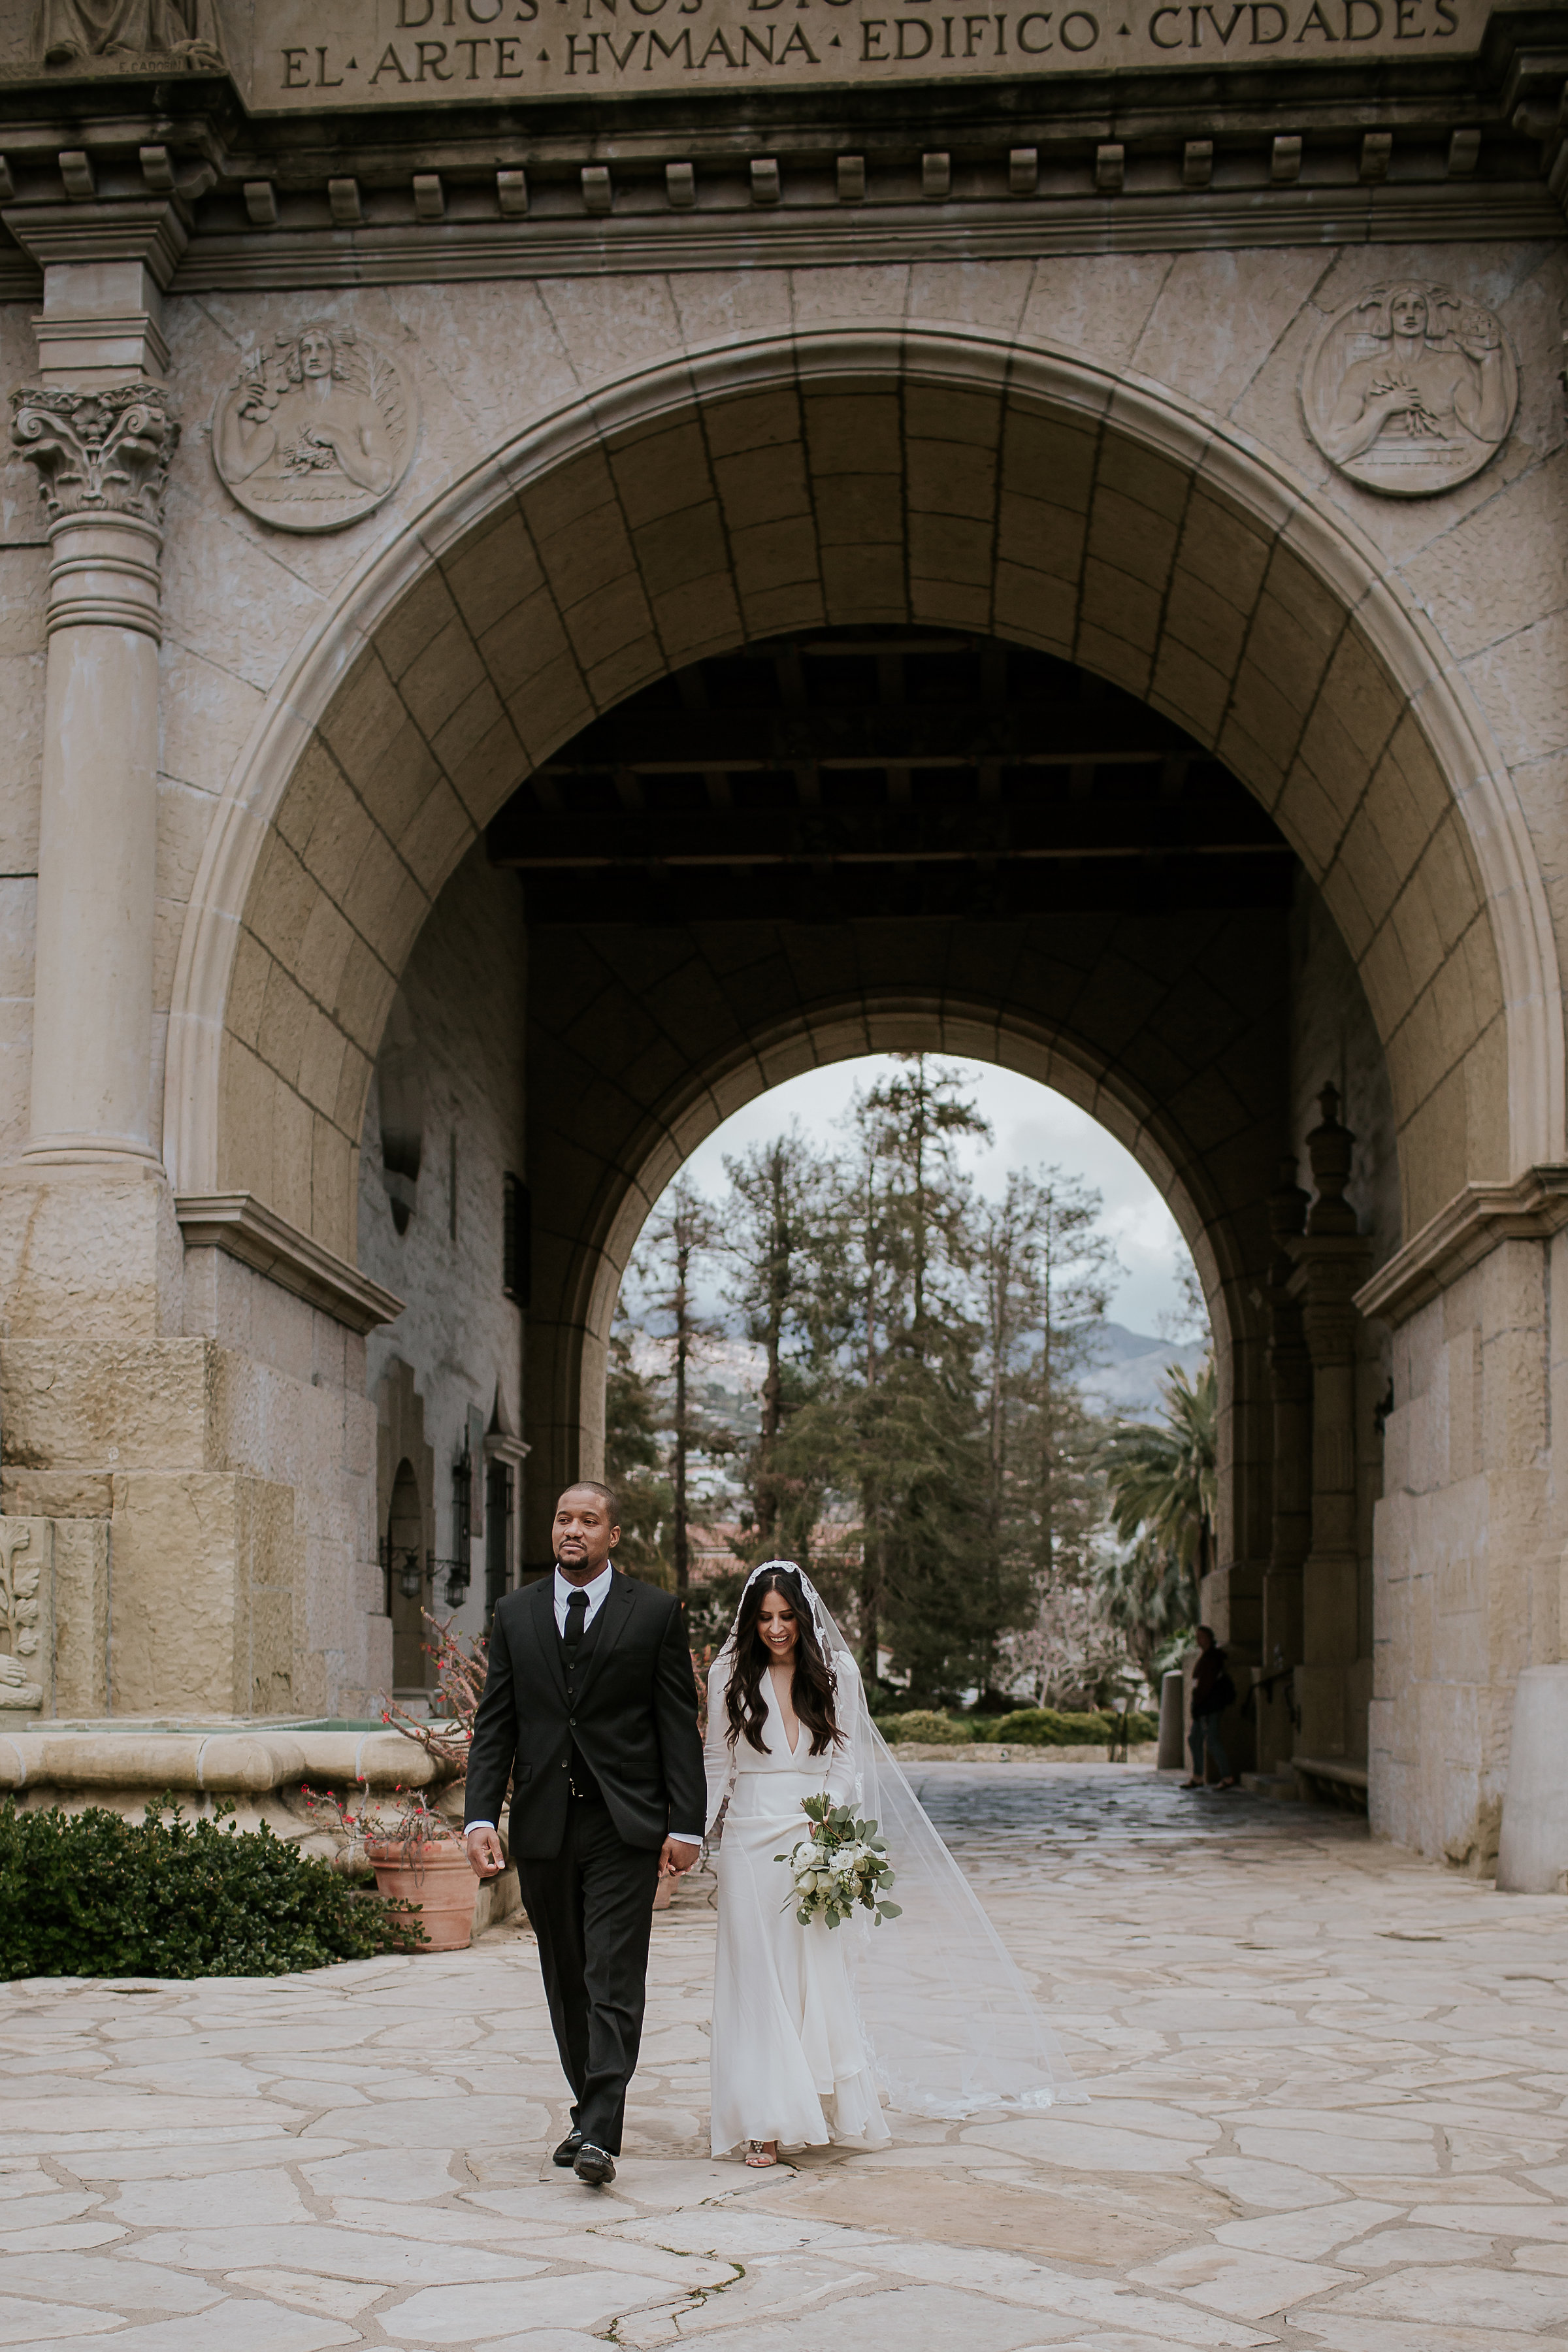 GabrielaandDeJuansantabarbaracourthouseweddingstellamaresweddingelopement-329.jpg